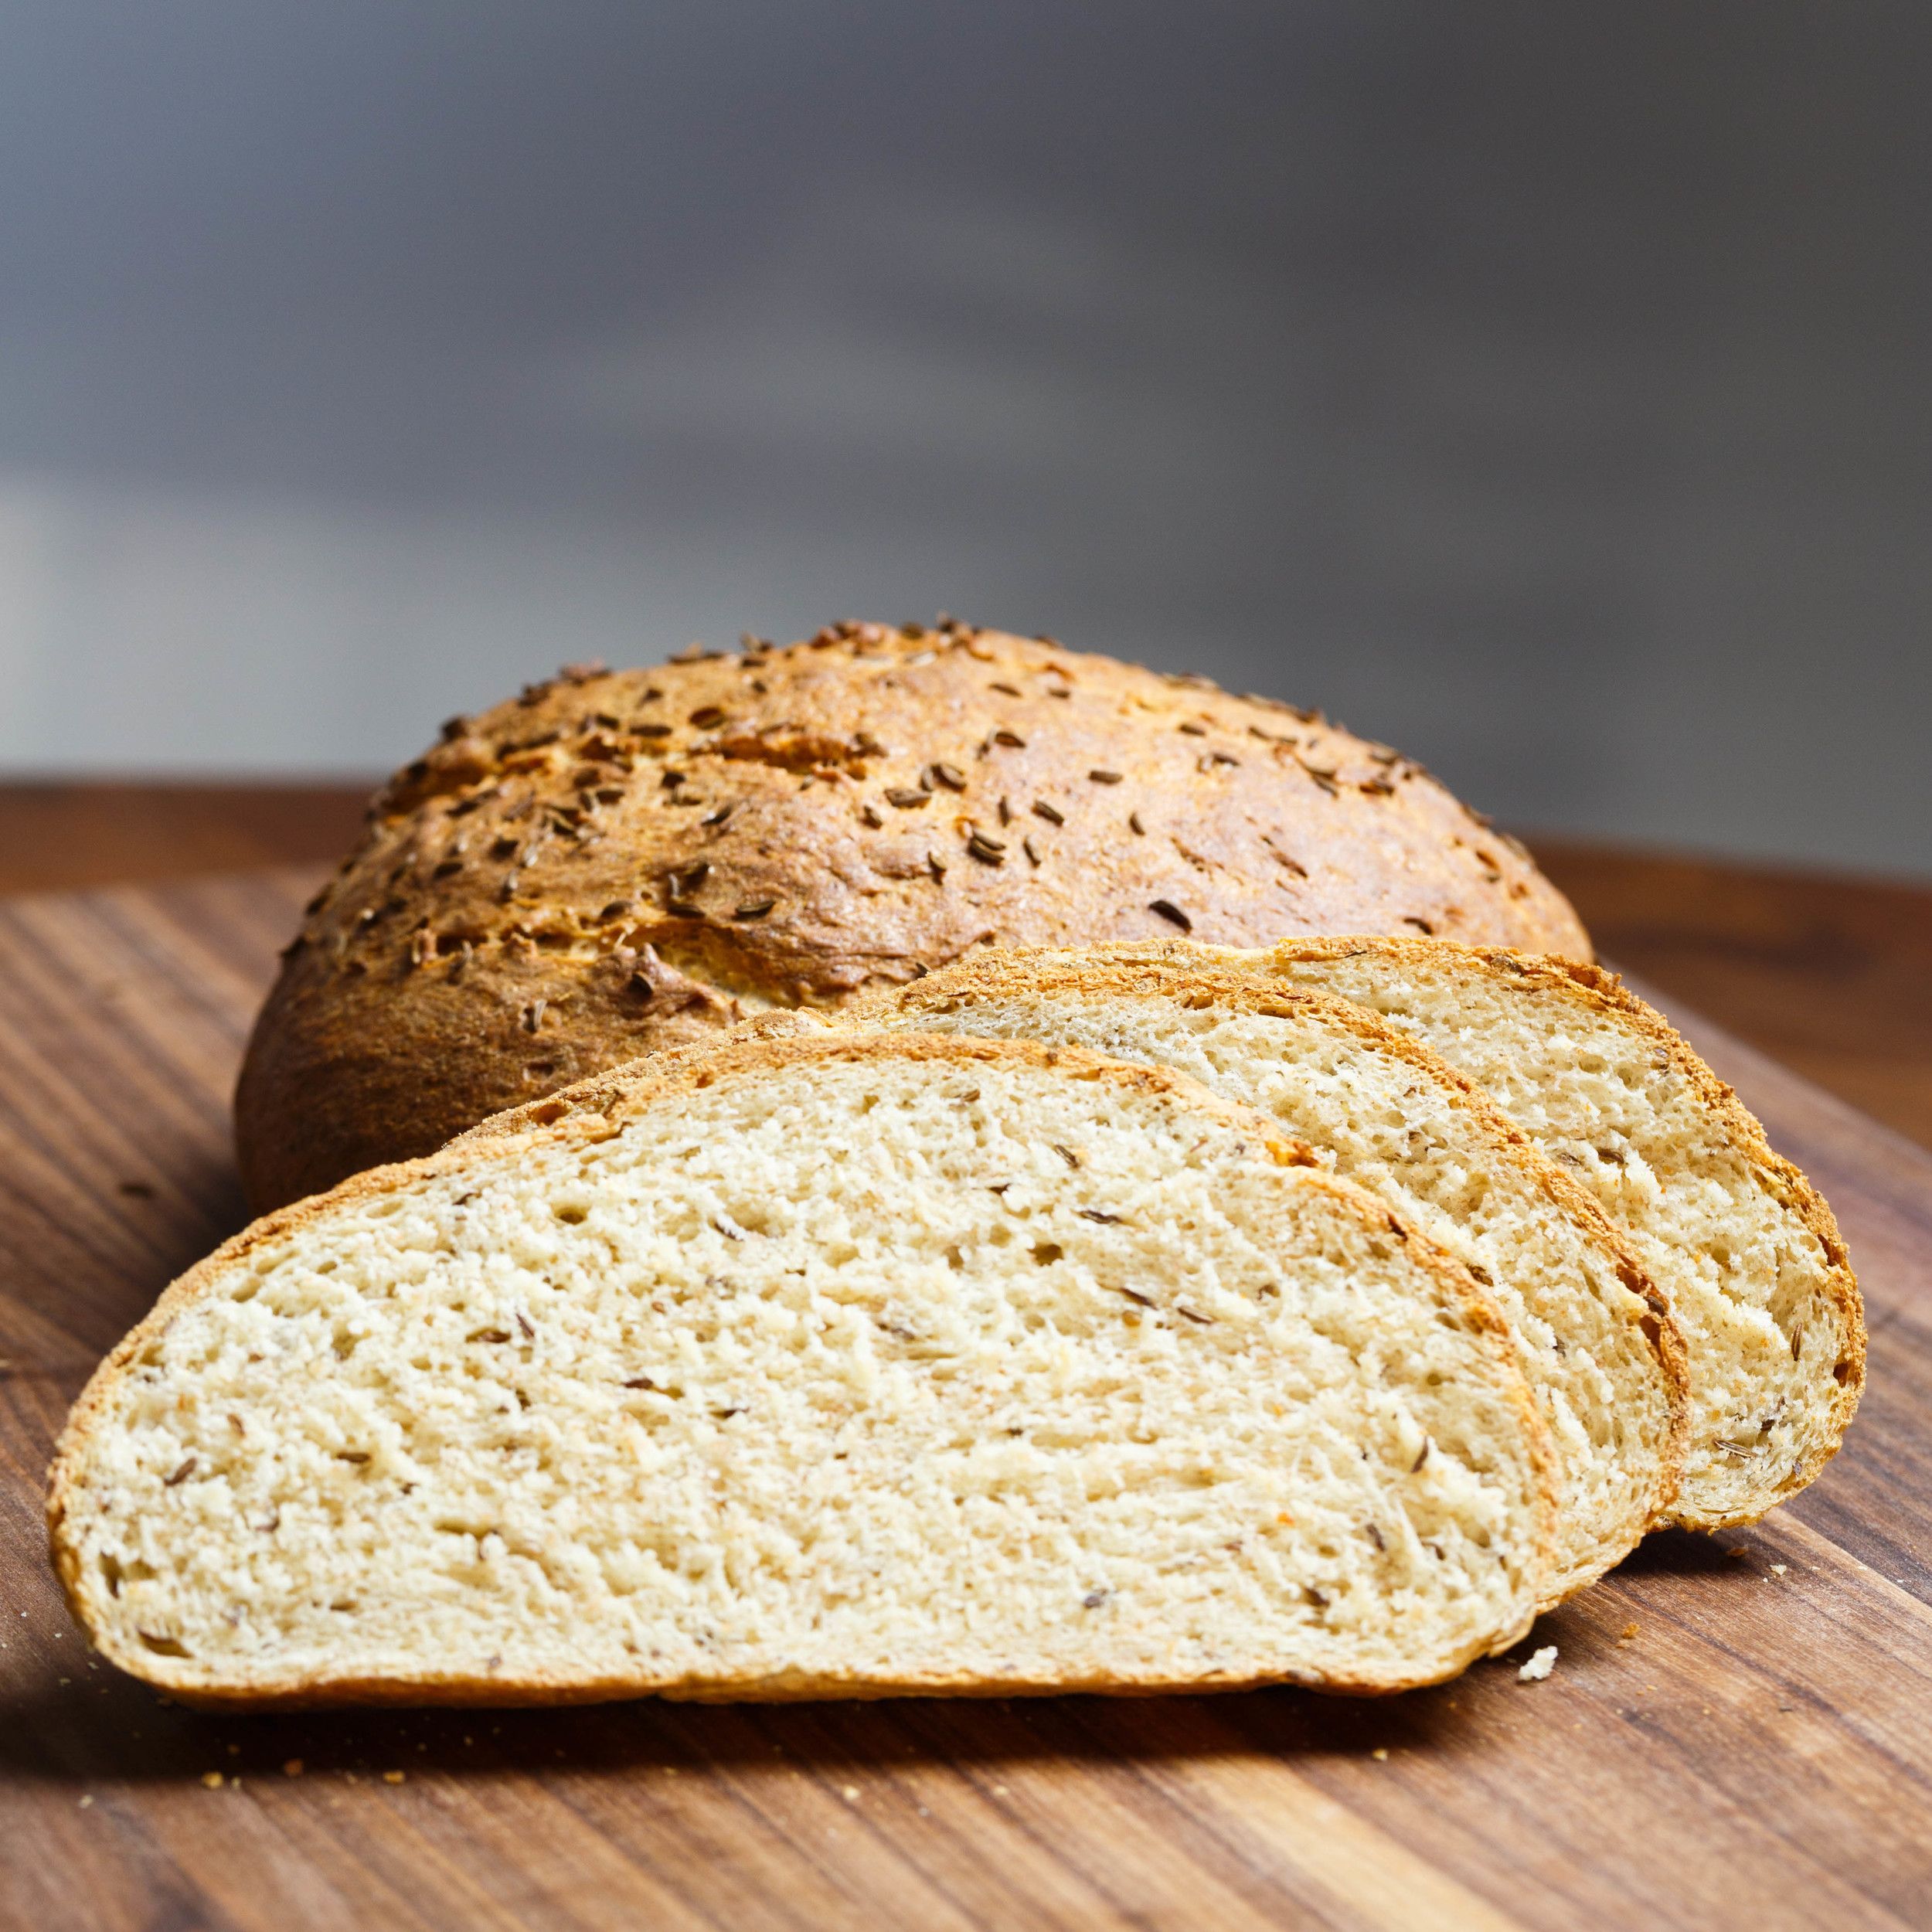 Surbrød - Bread with Caraway Seeds